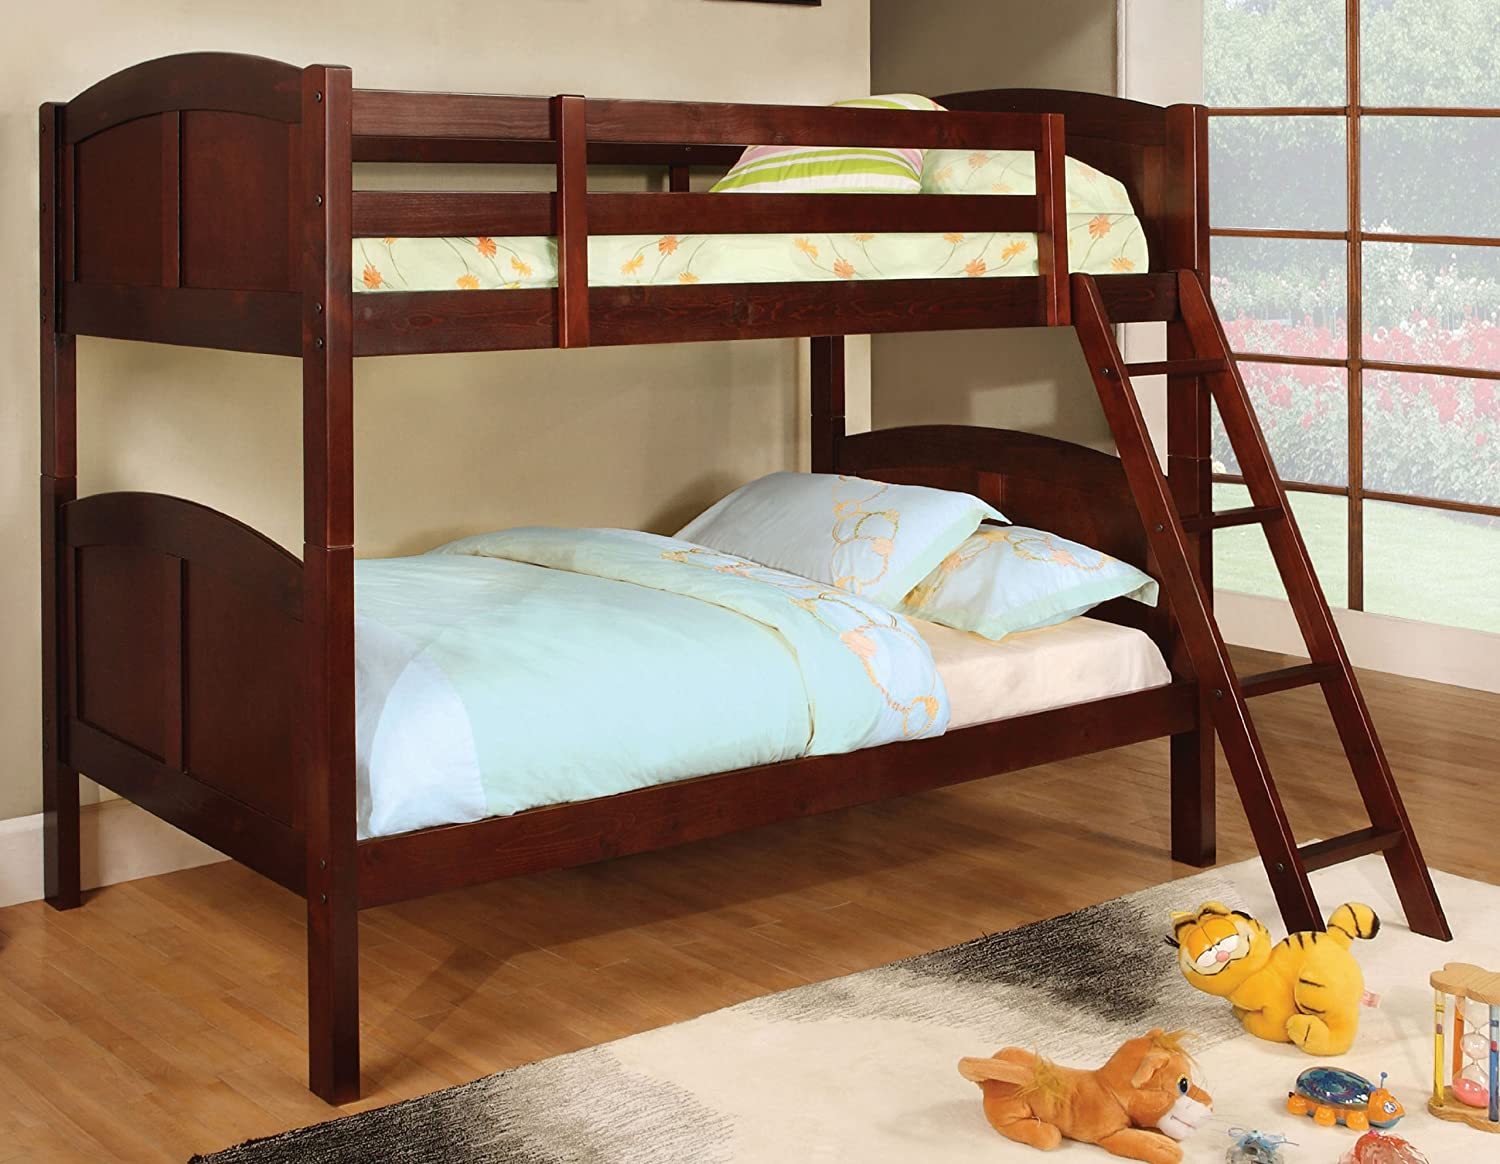 Furniture of America Cottage Bunk Bed, Twin, Cherry